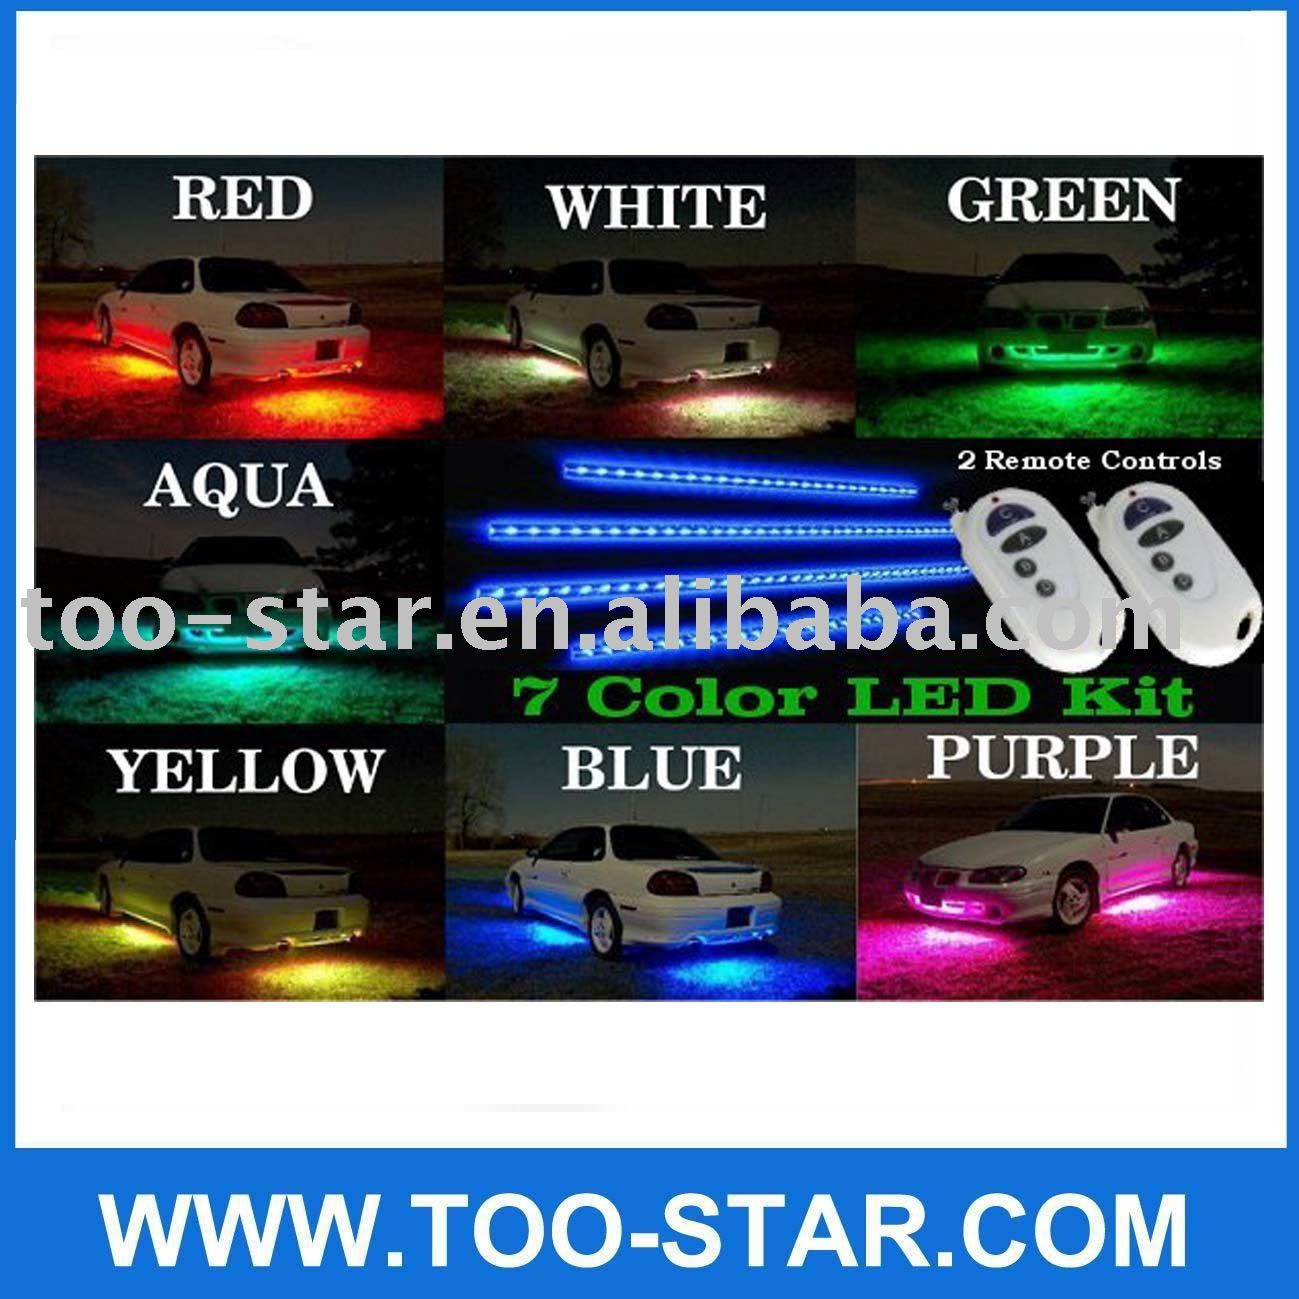 7 Color LED Underbody/Undercar Car Kit with REMOTE